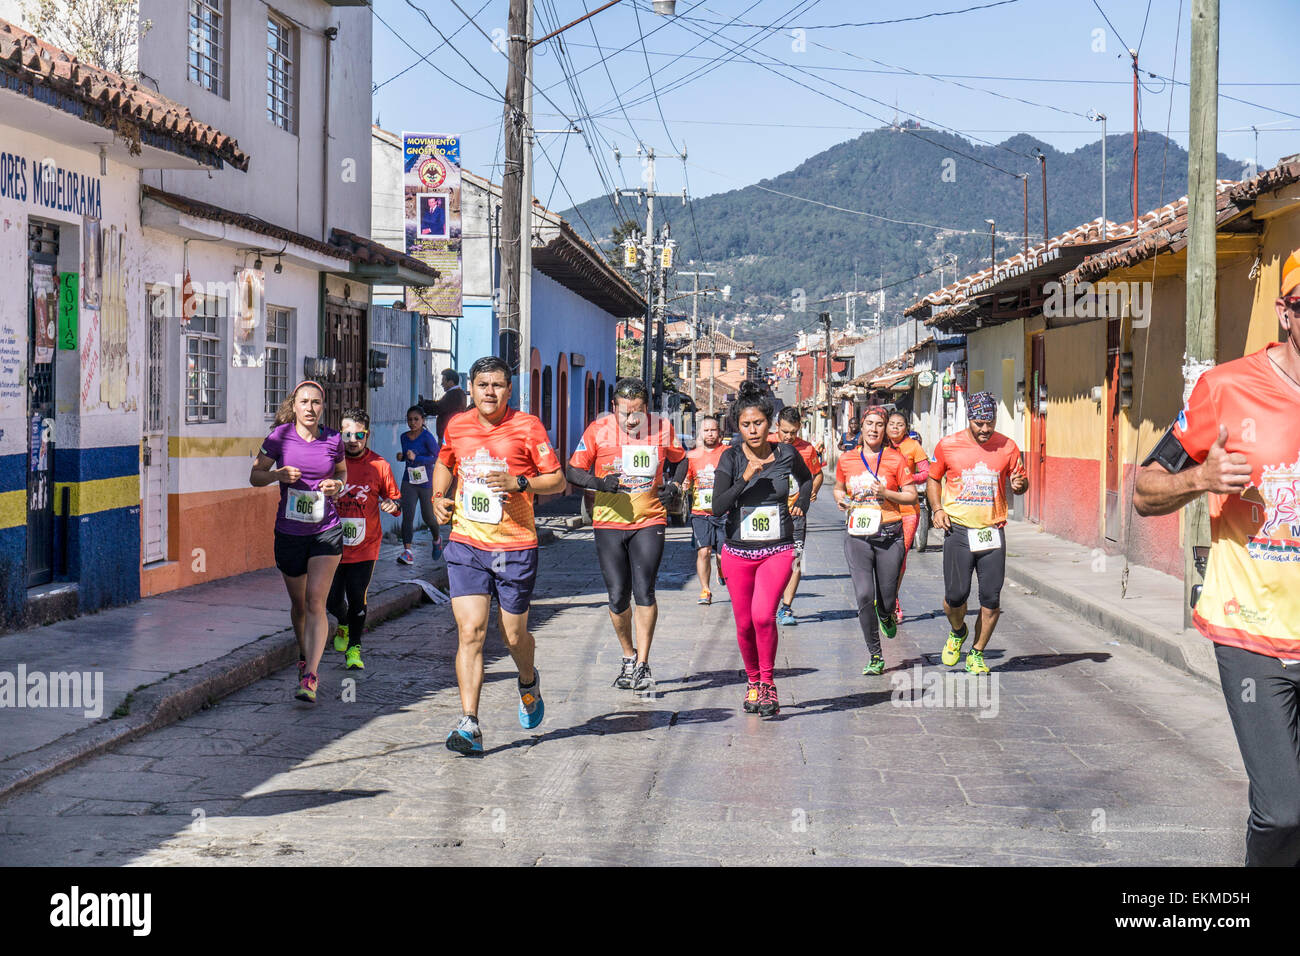 determined group of bunched runners running San Cristobal de las Casas half marathon which draws runners from surrounding - Stock Image